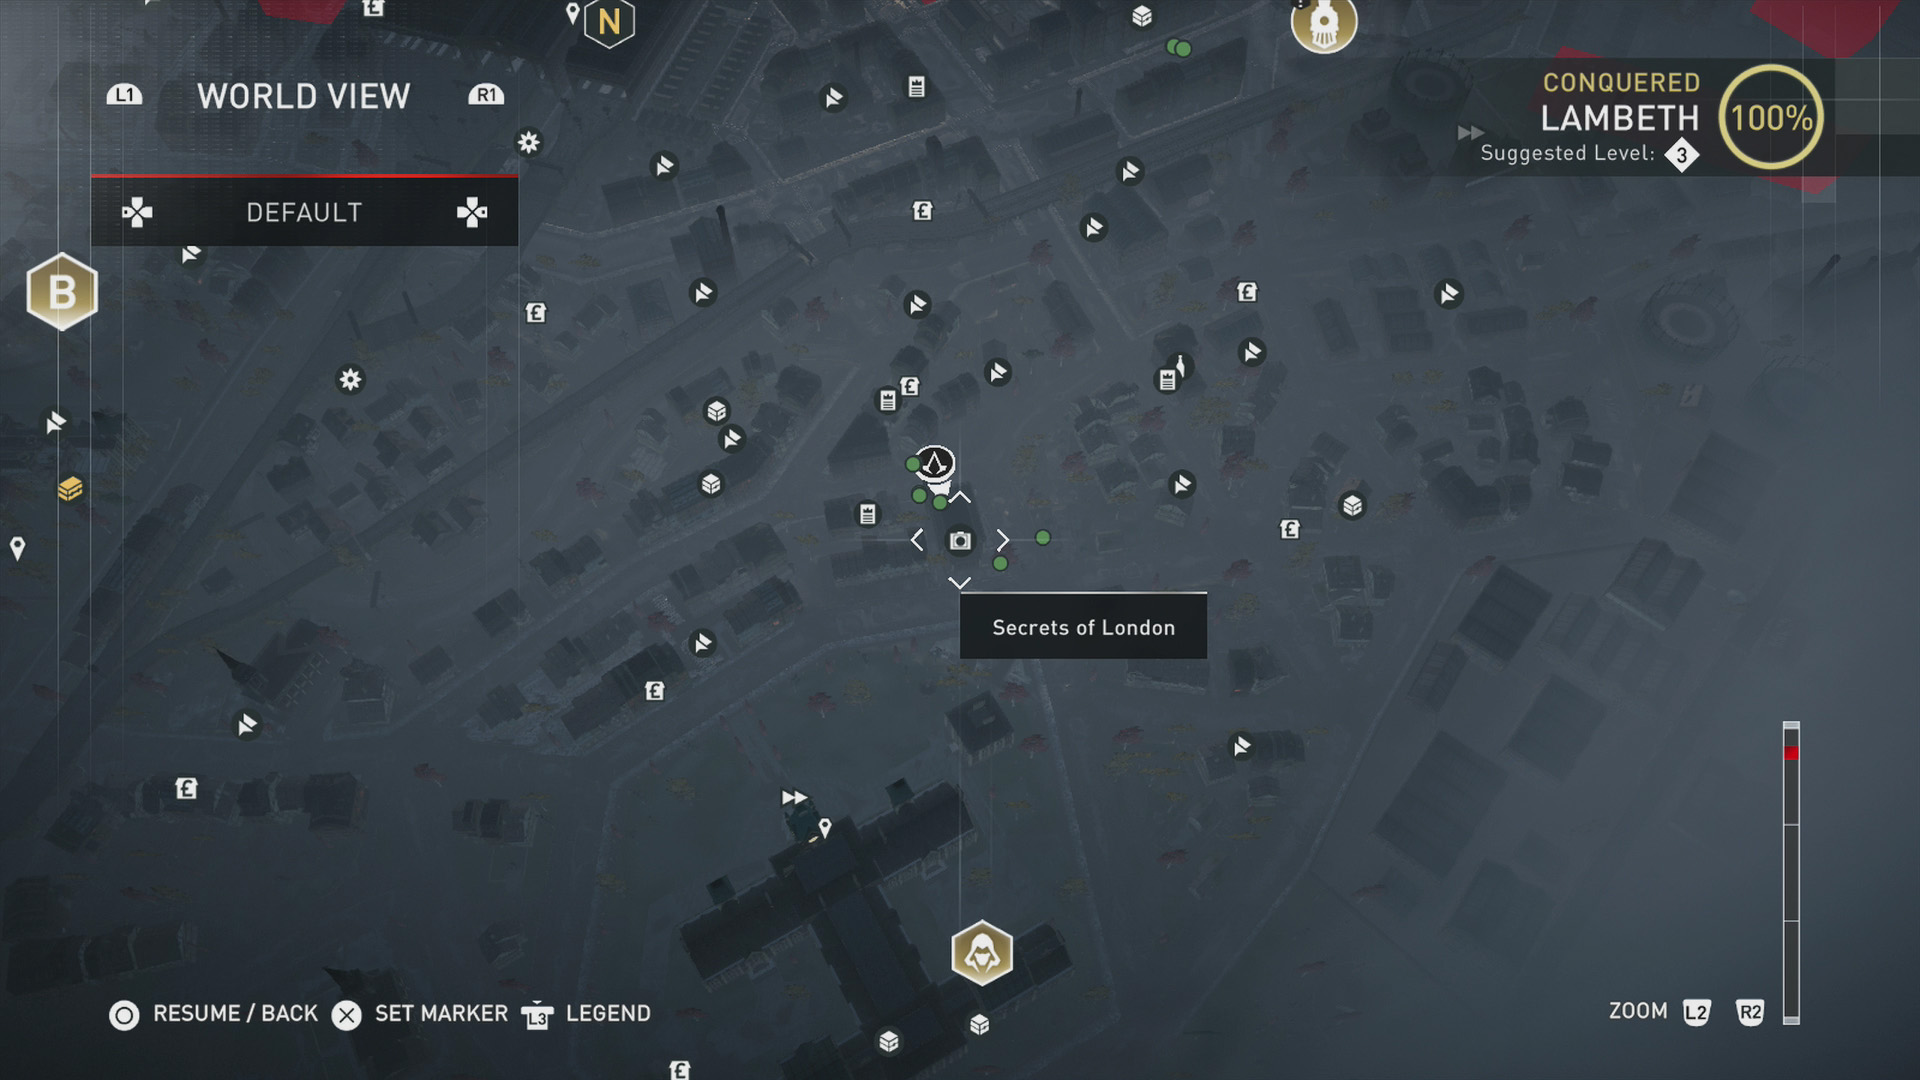 Syndicate Secrets Of London Map.Assassin S Creed Syndicate All Secrets Of London Locations Aegis